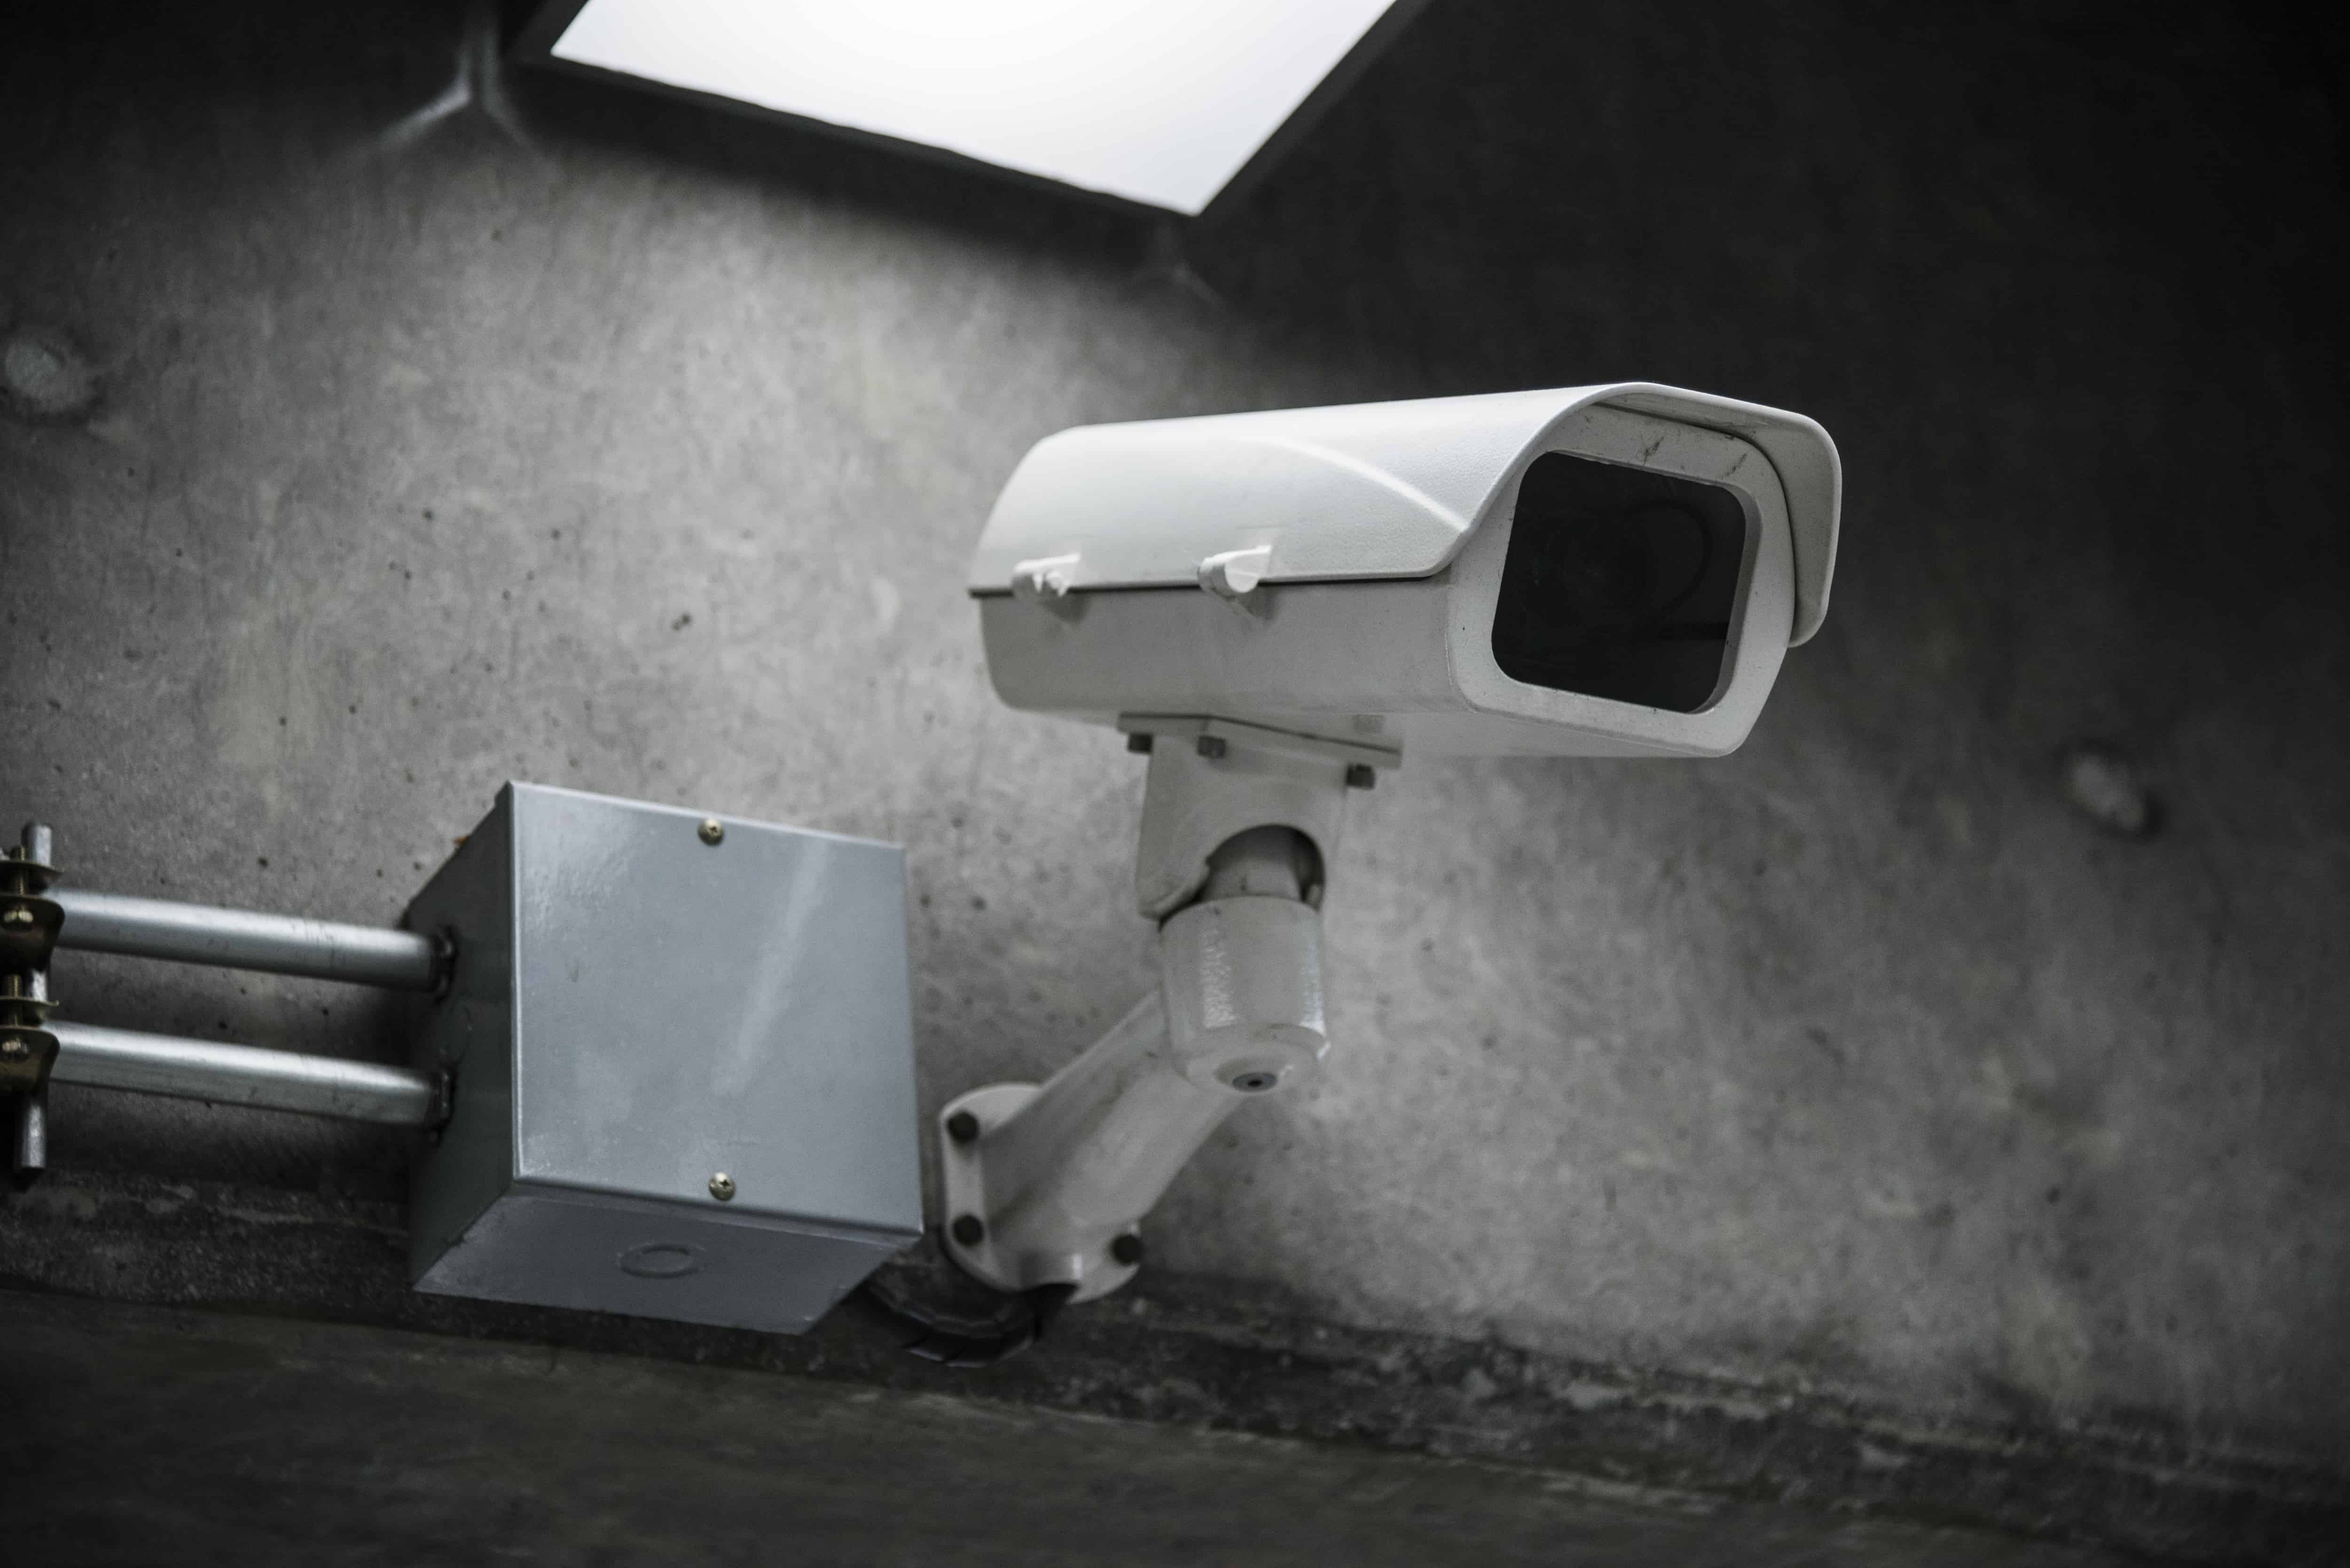 An image of a CCTV camera closeup, on the wall.